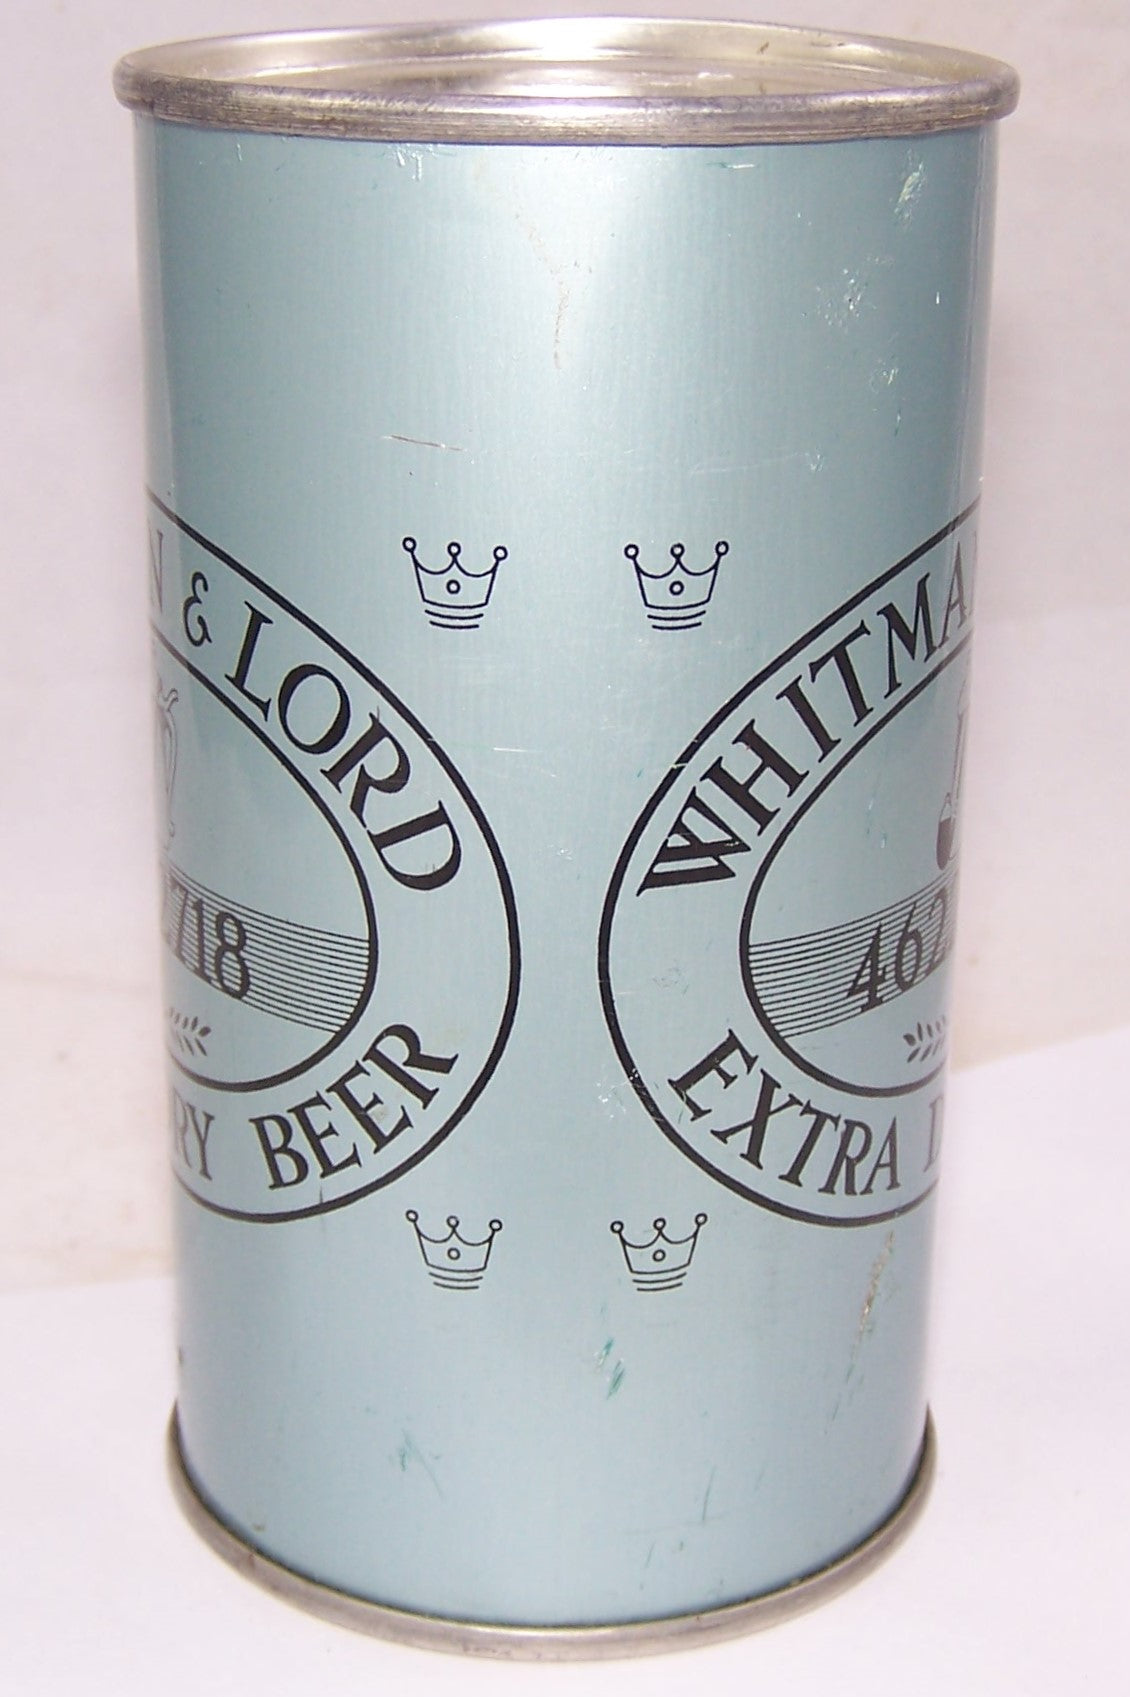 Whitman & Lord Extra Dry Beer, USBC 145-19, Grade 1/1-